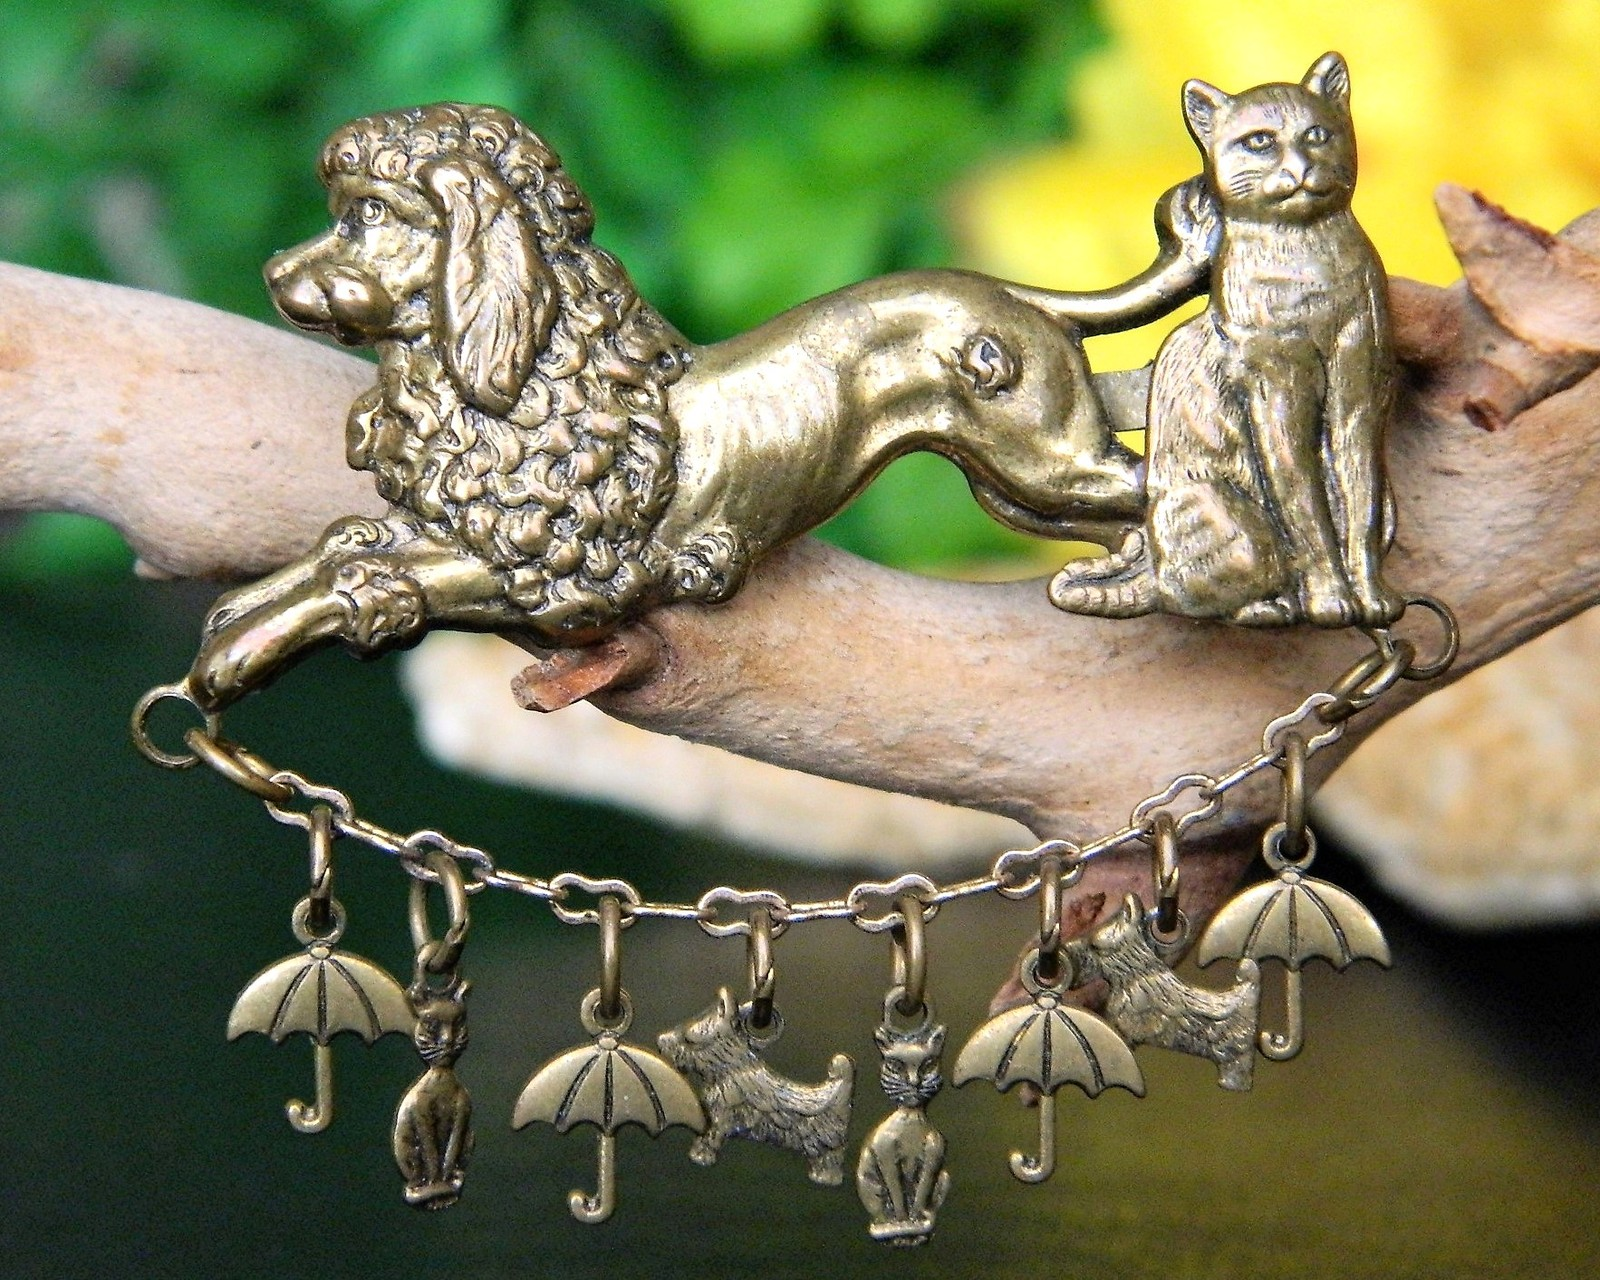 Vintage Raining Cats and Dogs Brooch Pin Poodle Scotty Umbrella Brass